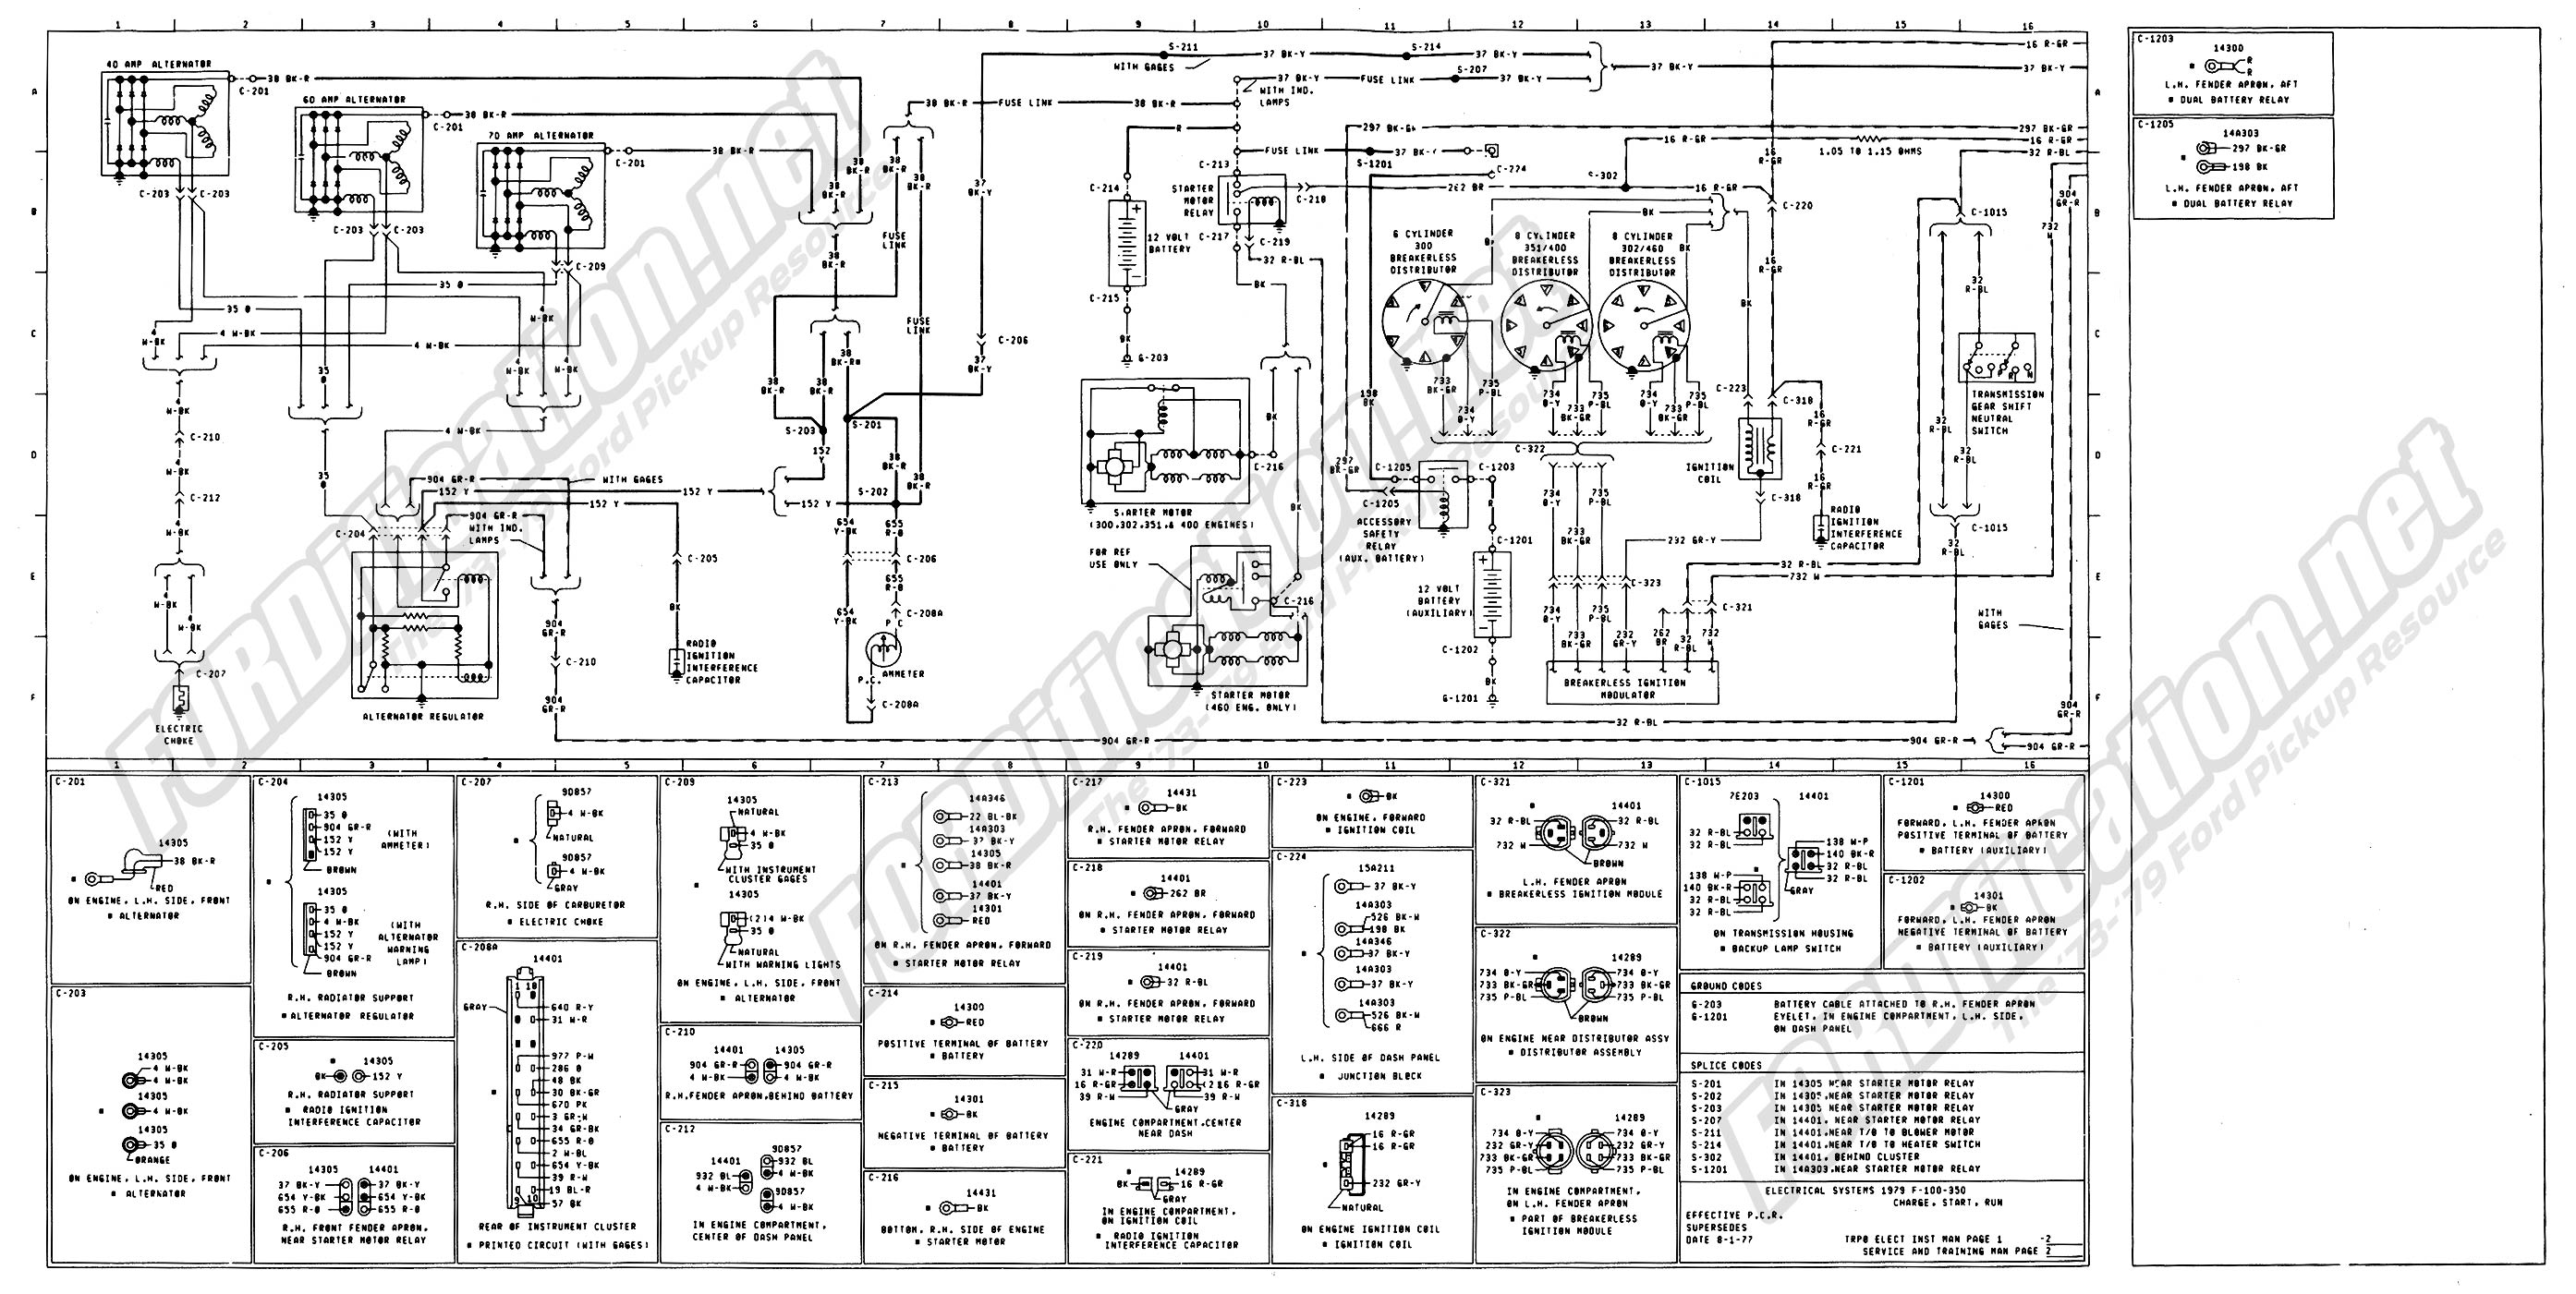 wiring_79master_2of9 1973 1979 ford truck wiring diagrams & schematics fordification net 1995 ford l9000 wiring schematics at honlapkeszites.co